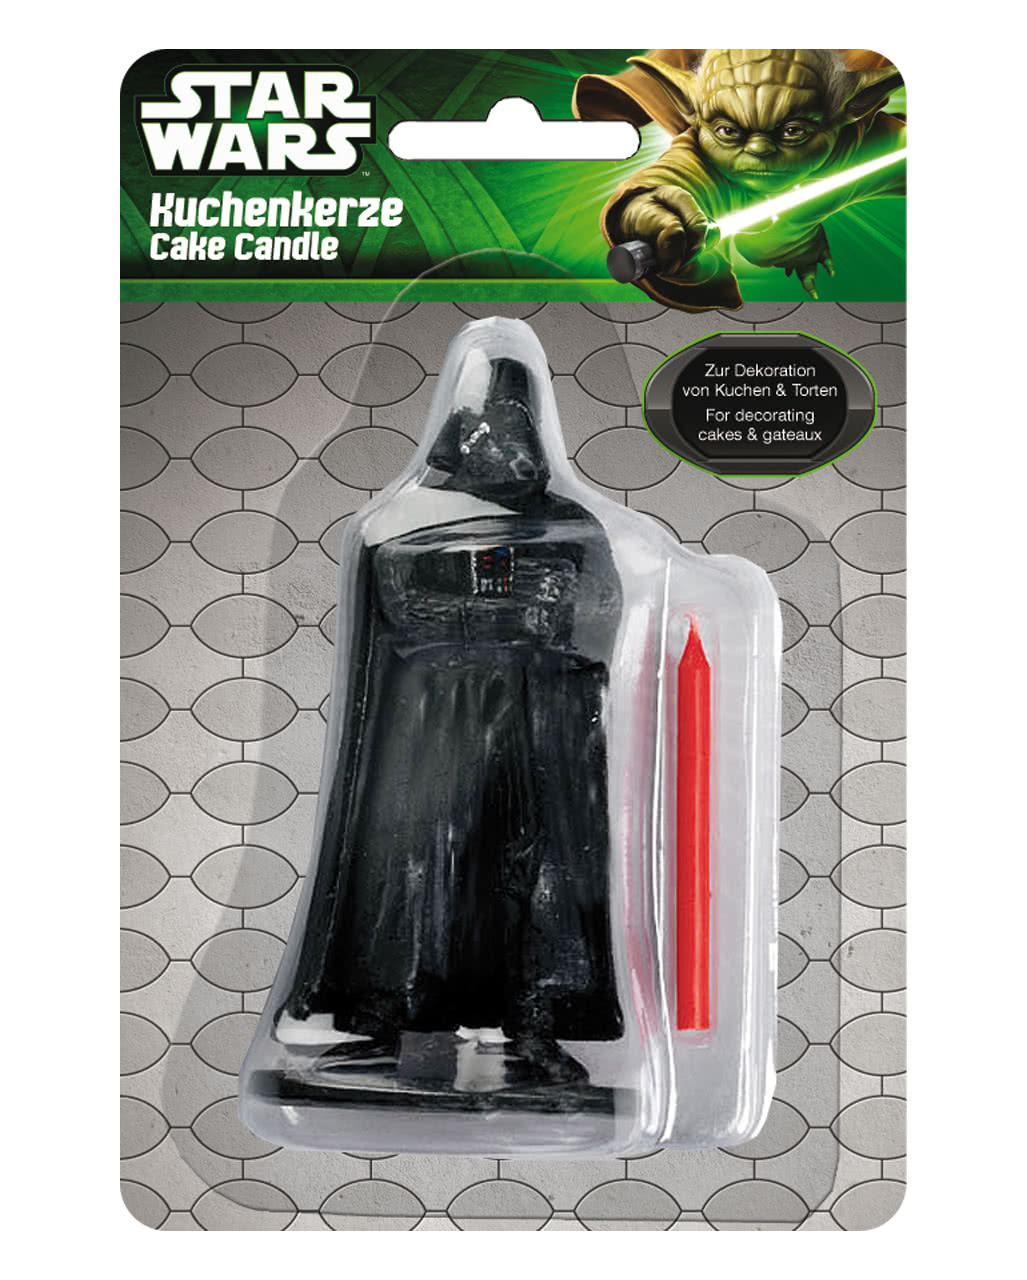 Darth vader tortenkerze star wars deko karneval universe for Star wars deko